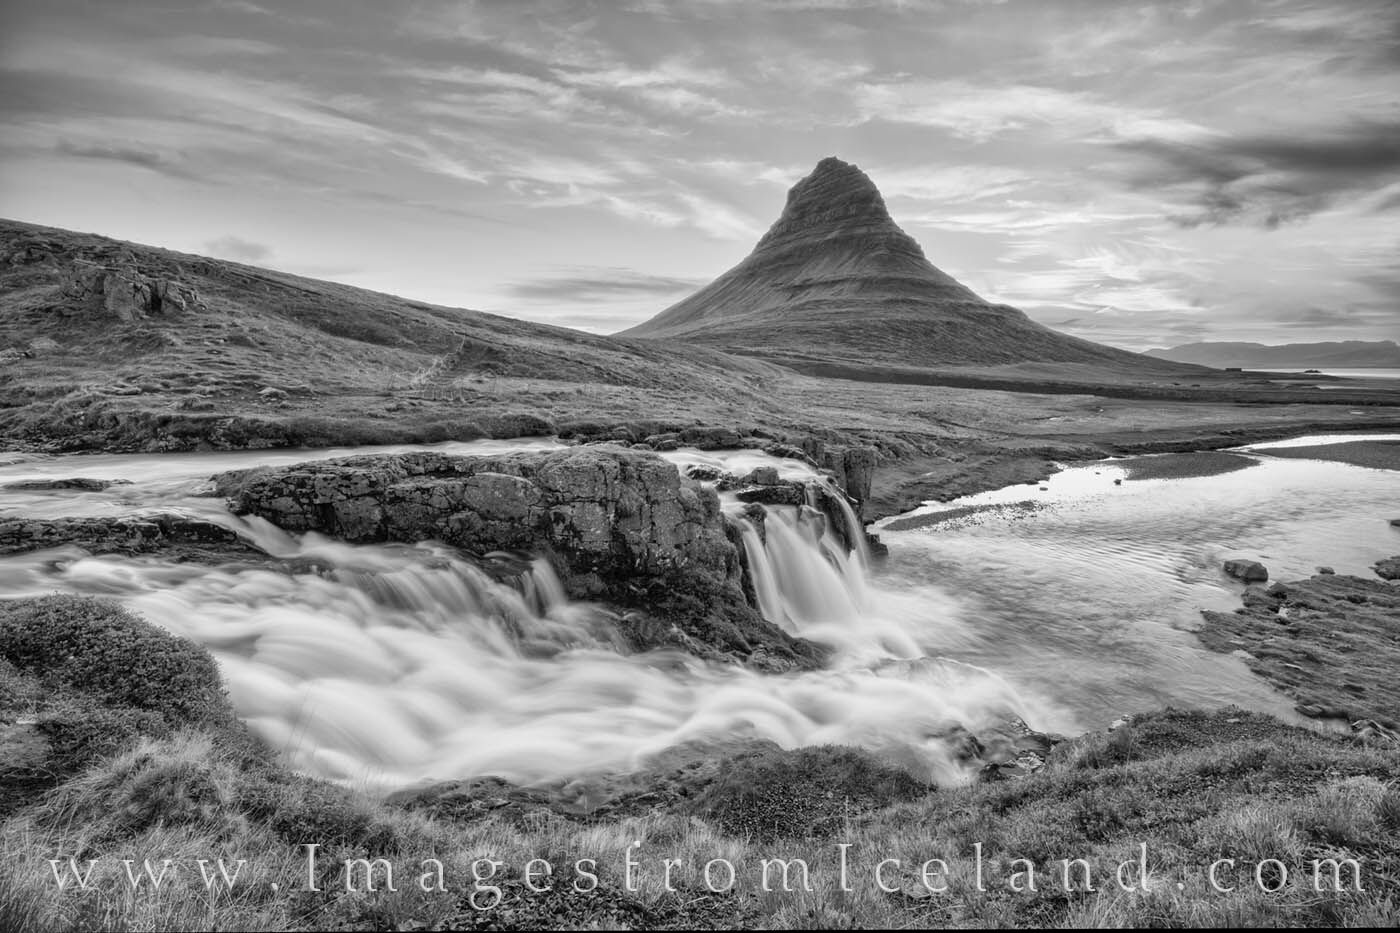 A little before sunrise, the skies above Kirkjufell Mountain show some soft pastel designs. The water of Kirkjufellfoss flowed...